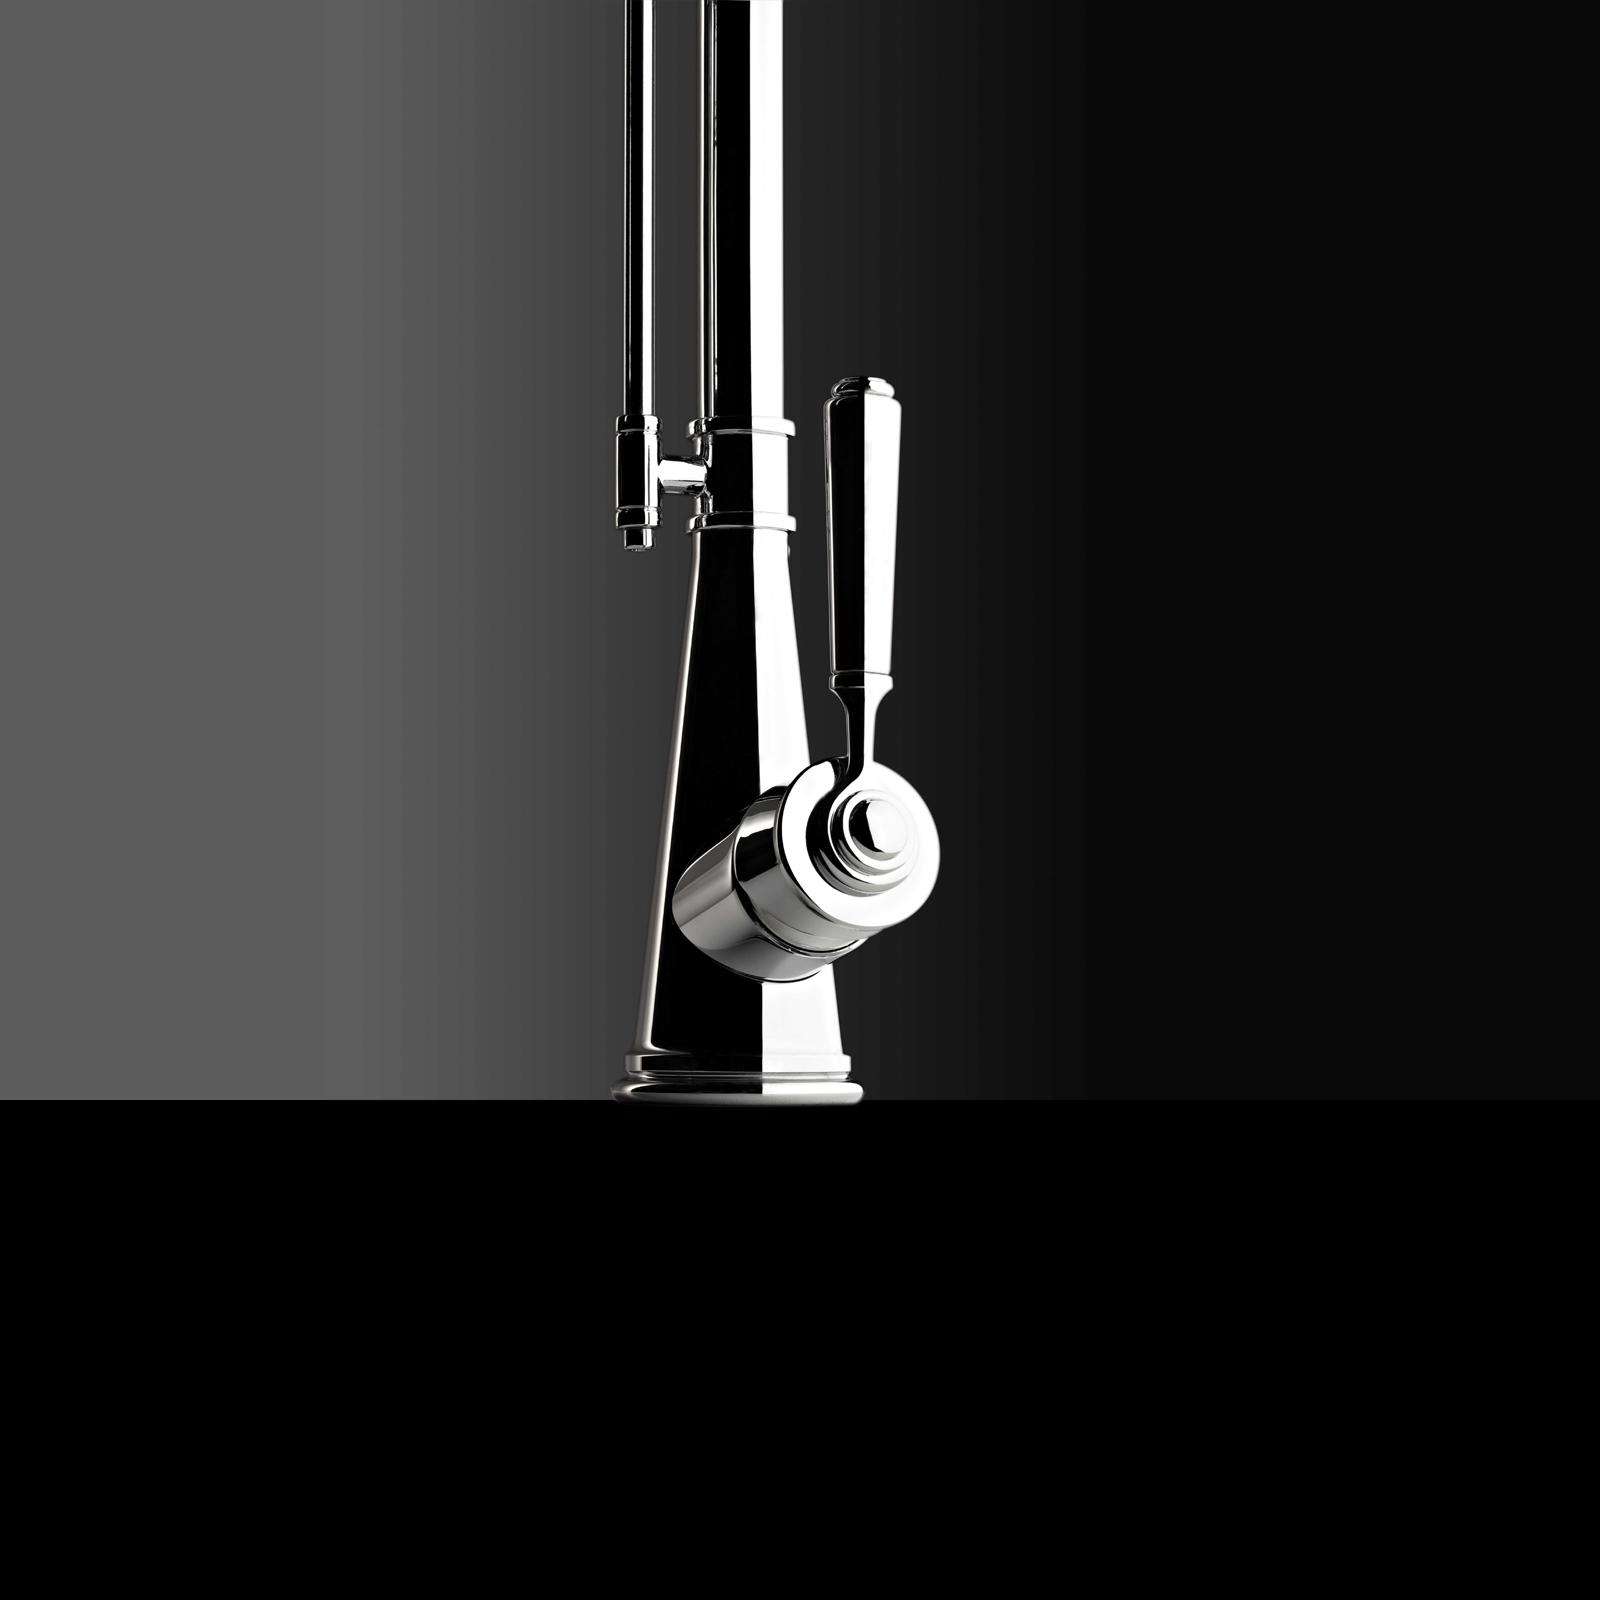 High-quality single lever tap Blaise - pull out spray - Chrome - ambience 2